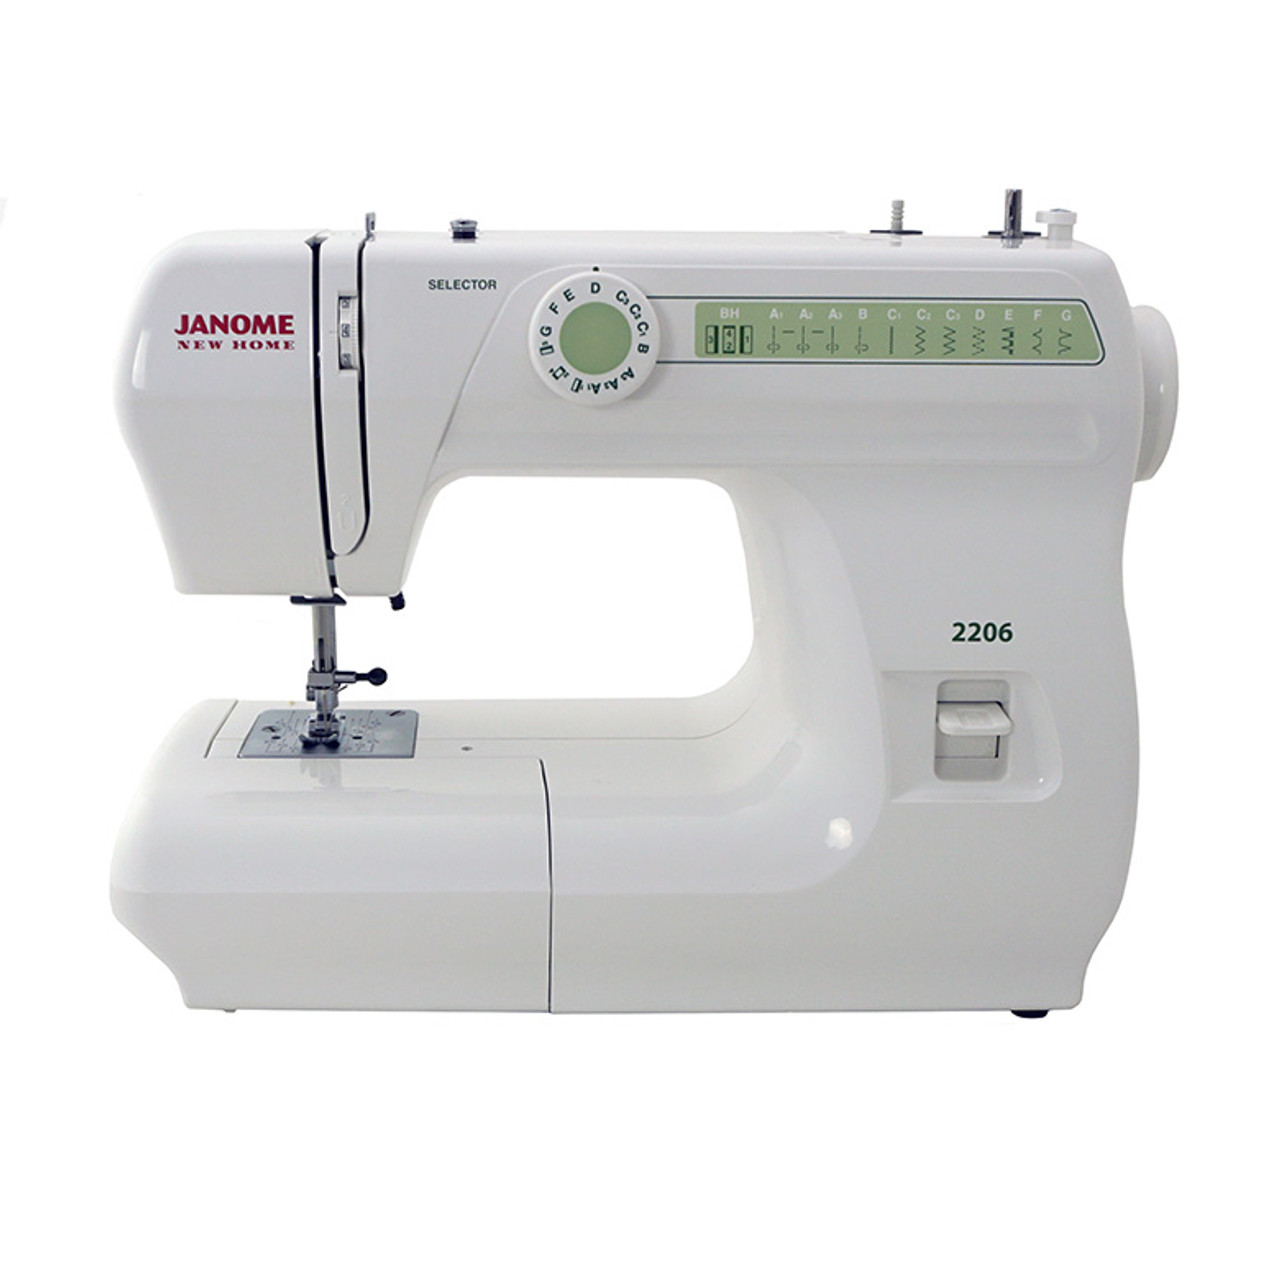 Janome 40 Sewing Machine With Exclusive Bonus Bundle 4040 Gorgeous Janome 2206 Sewing Machine Reviews